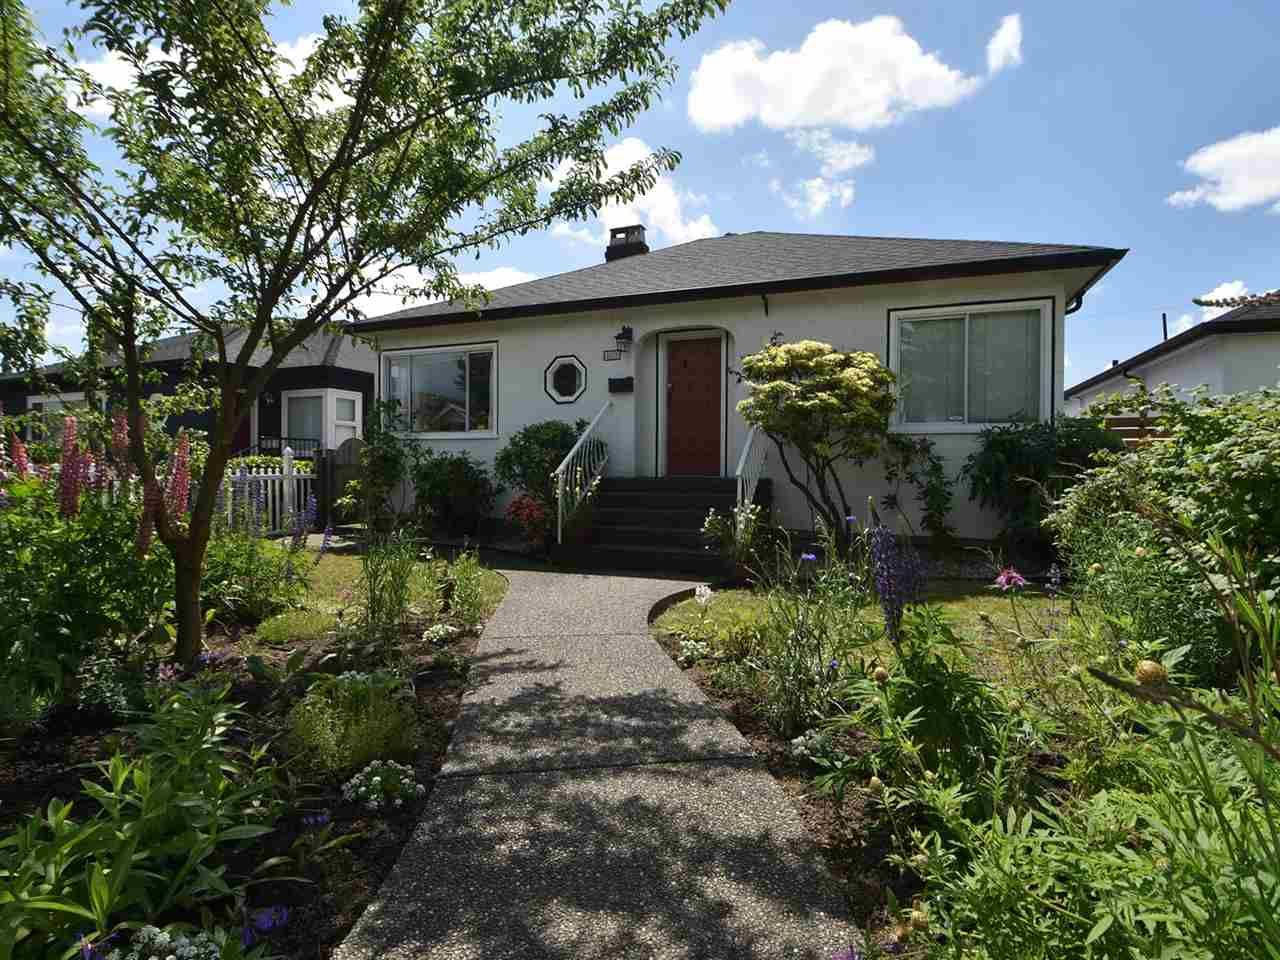 Main Photo: 2812 ADANAC Street in Vancouver: Renfrew VE House for sale (Vancouver East)  : MLS®# R2173673